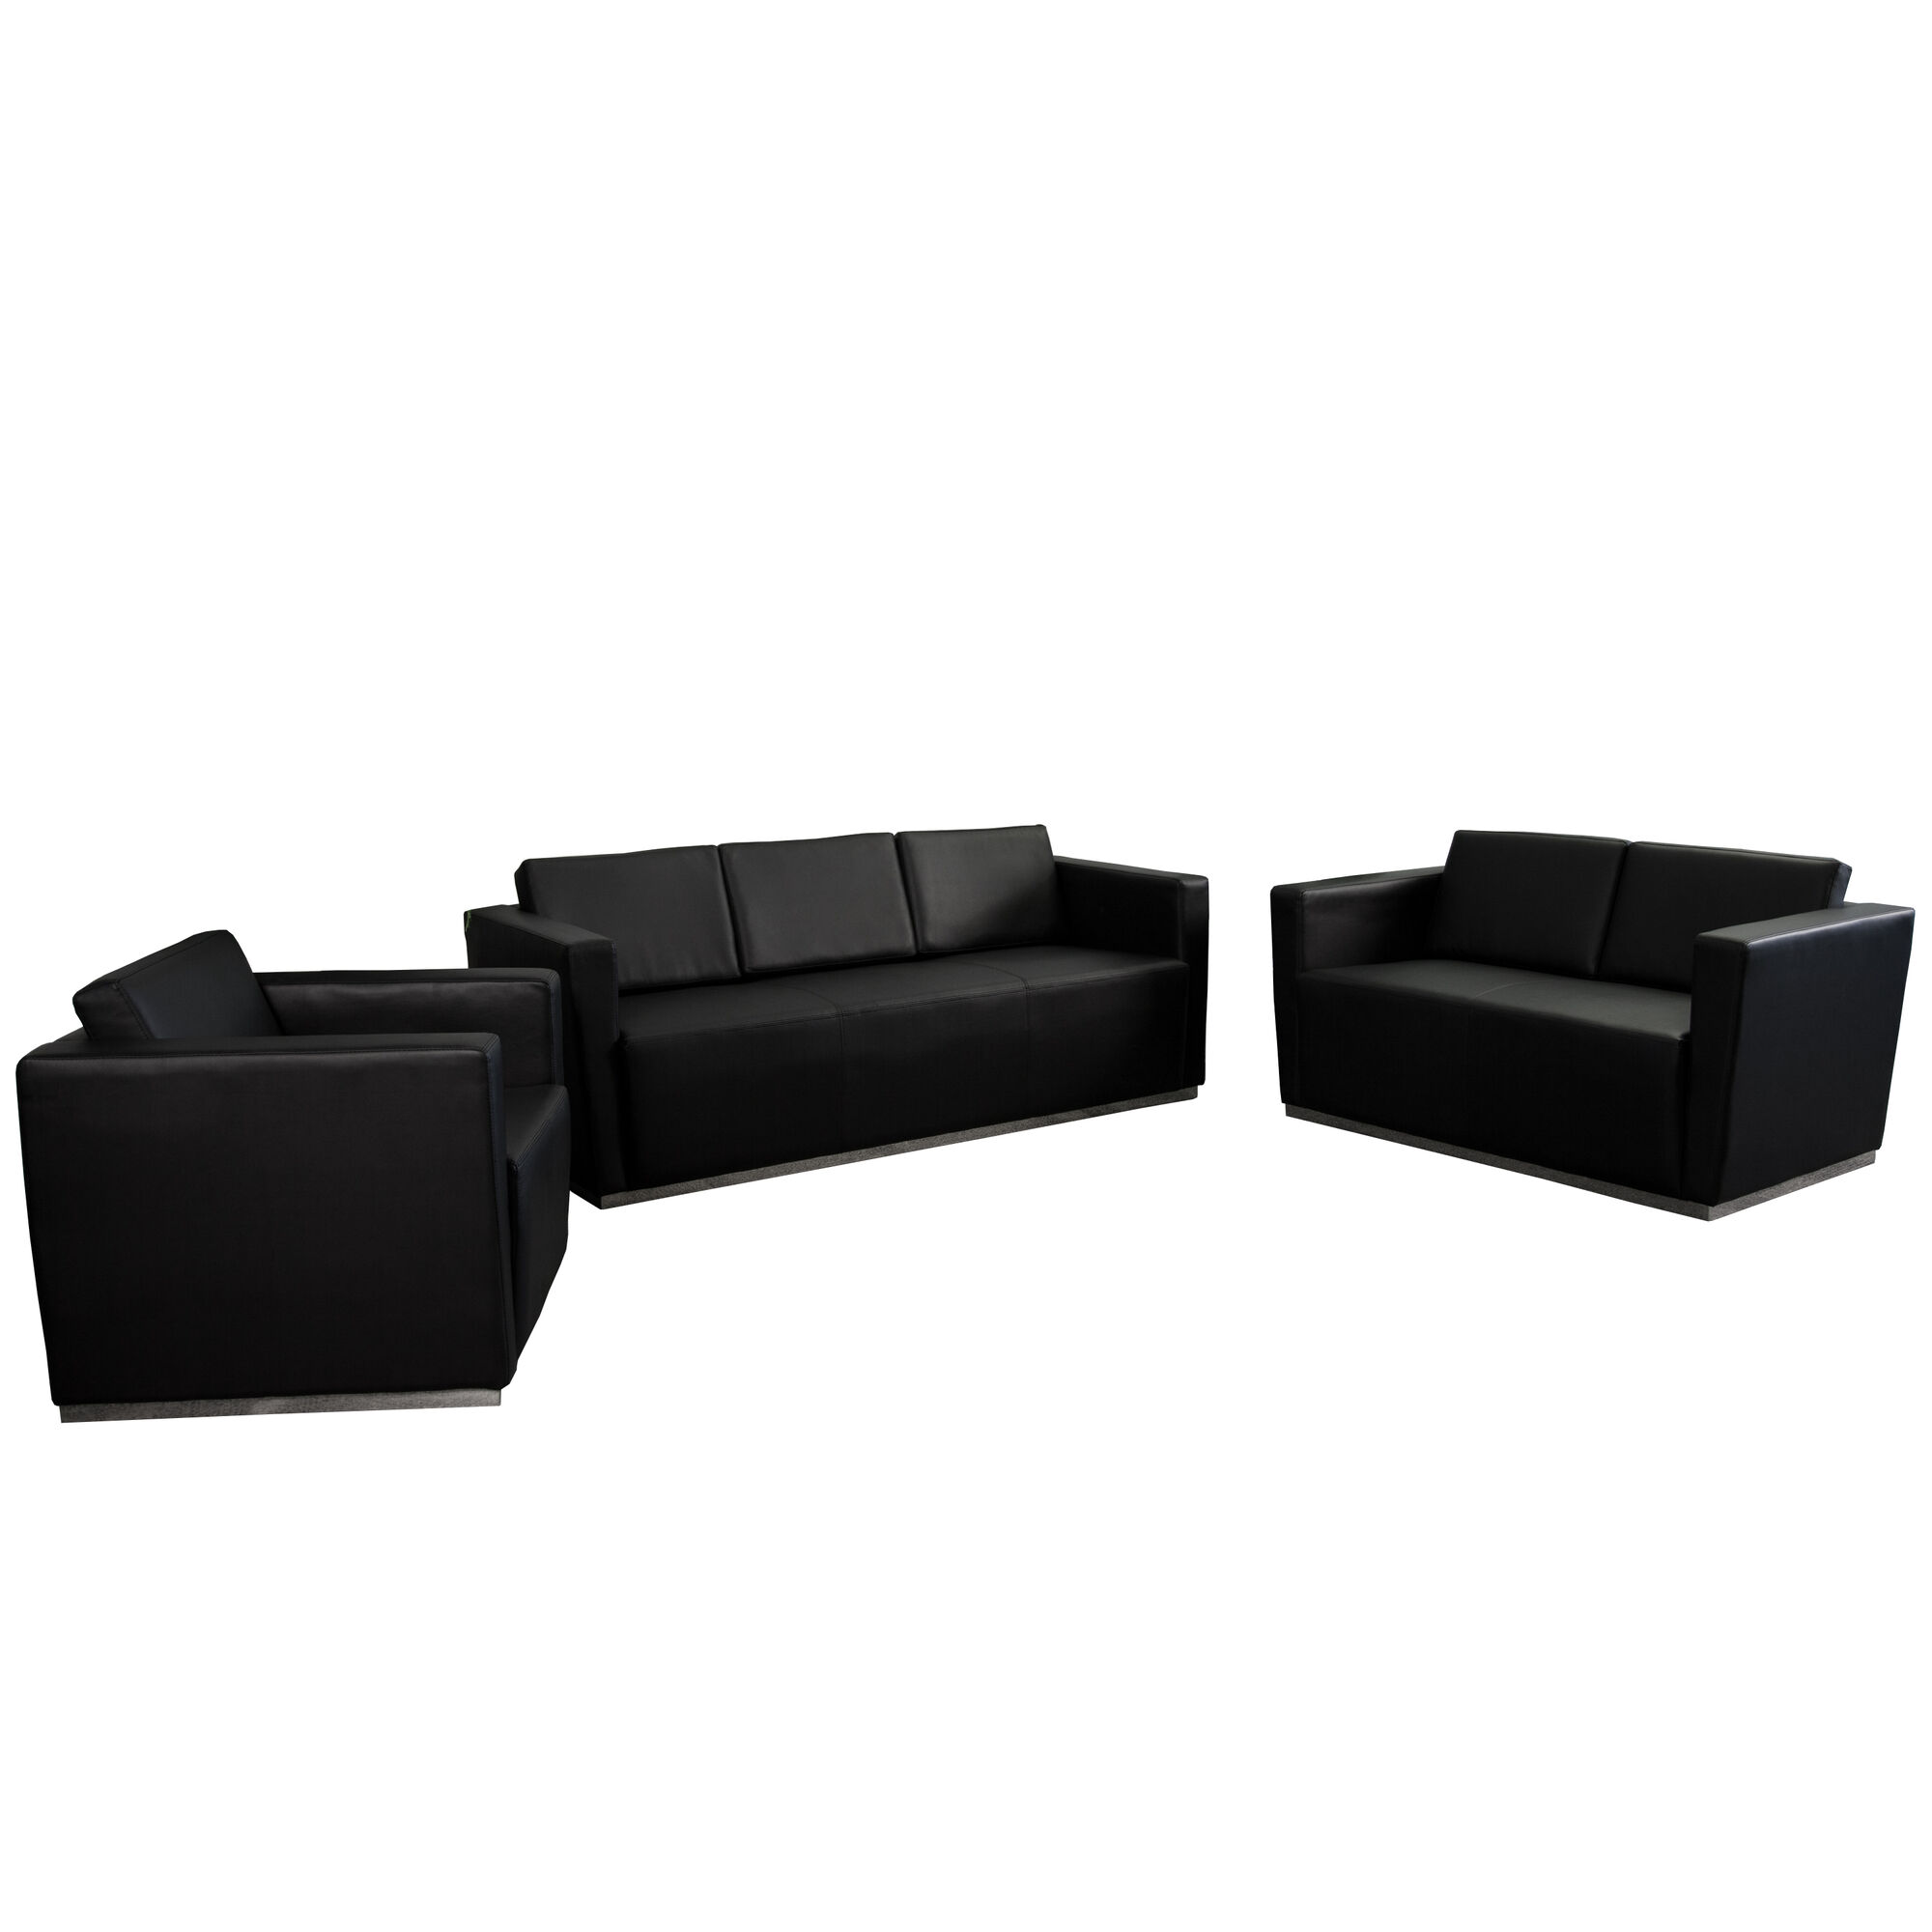 Black Leather Sofa Office: Our HERCULES Trinity Series Living Room Set In Black With